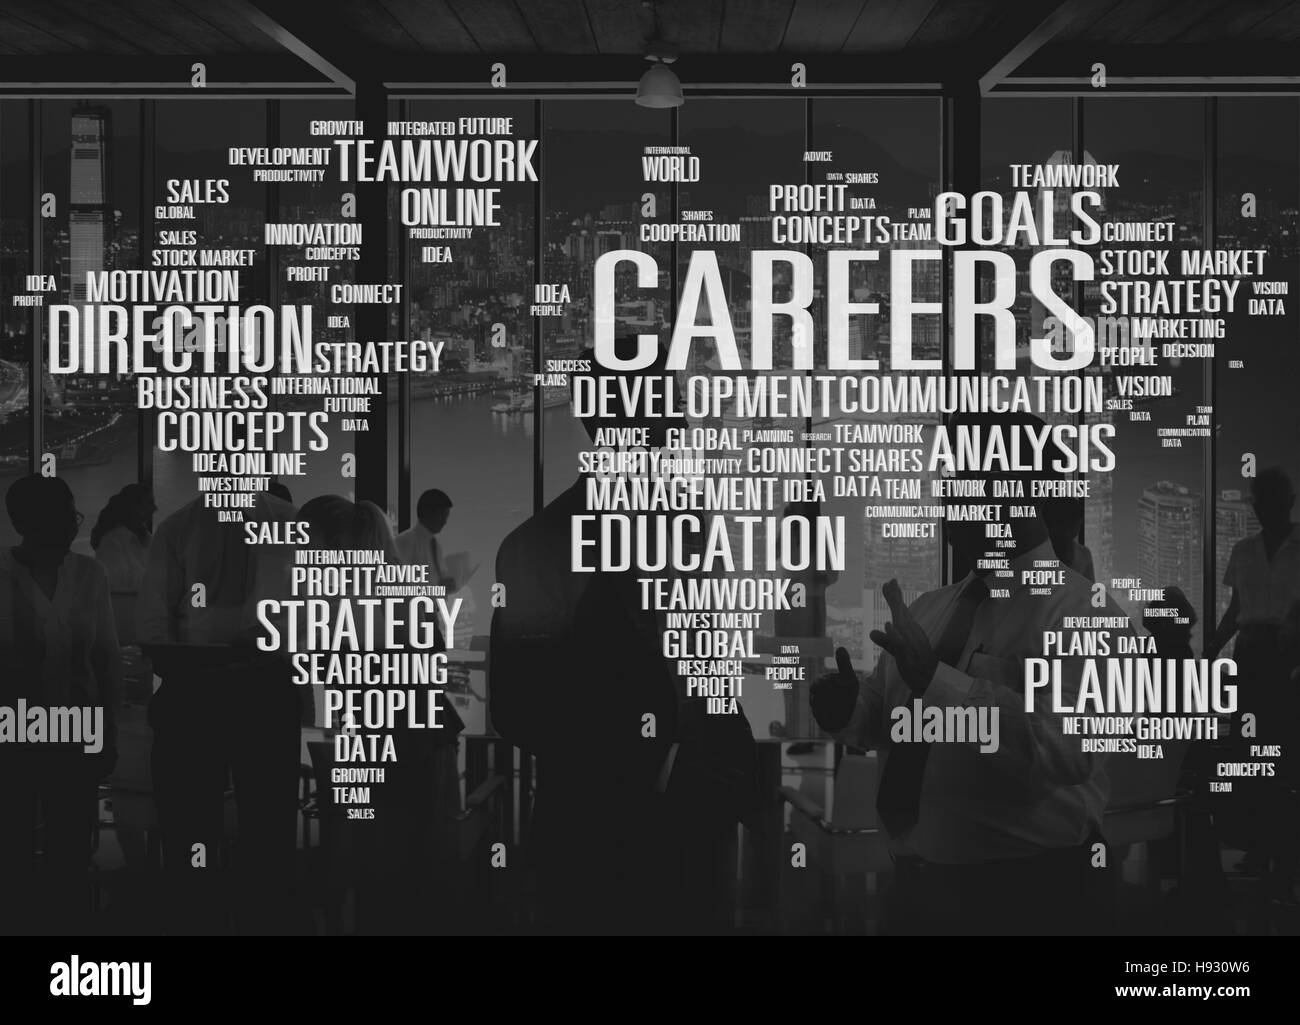 Careers Analysis Cooperation Data Development Concept - Stock Image